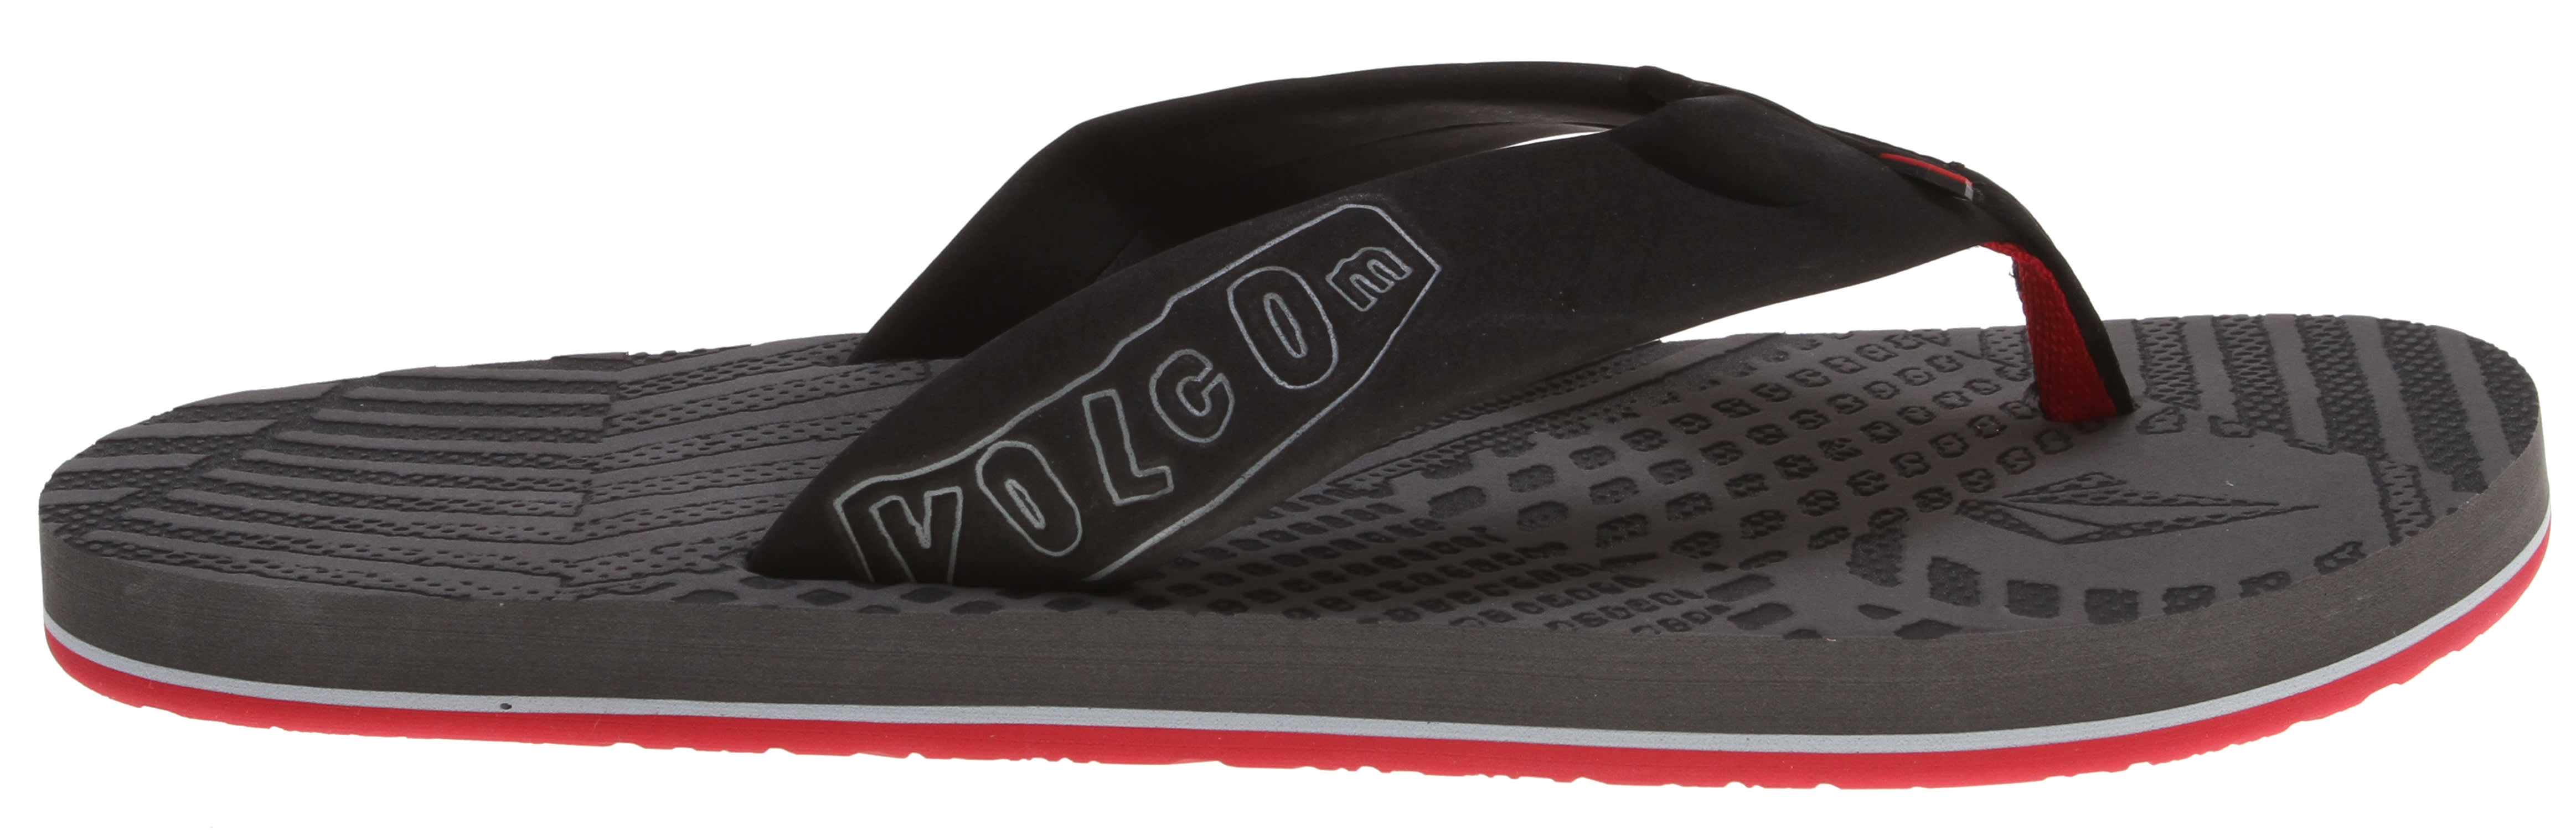 Volcom Burner Creedlers Sandals Pewter - Men's